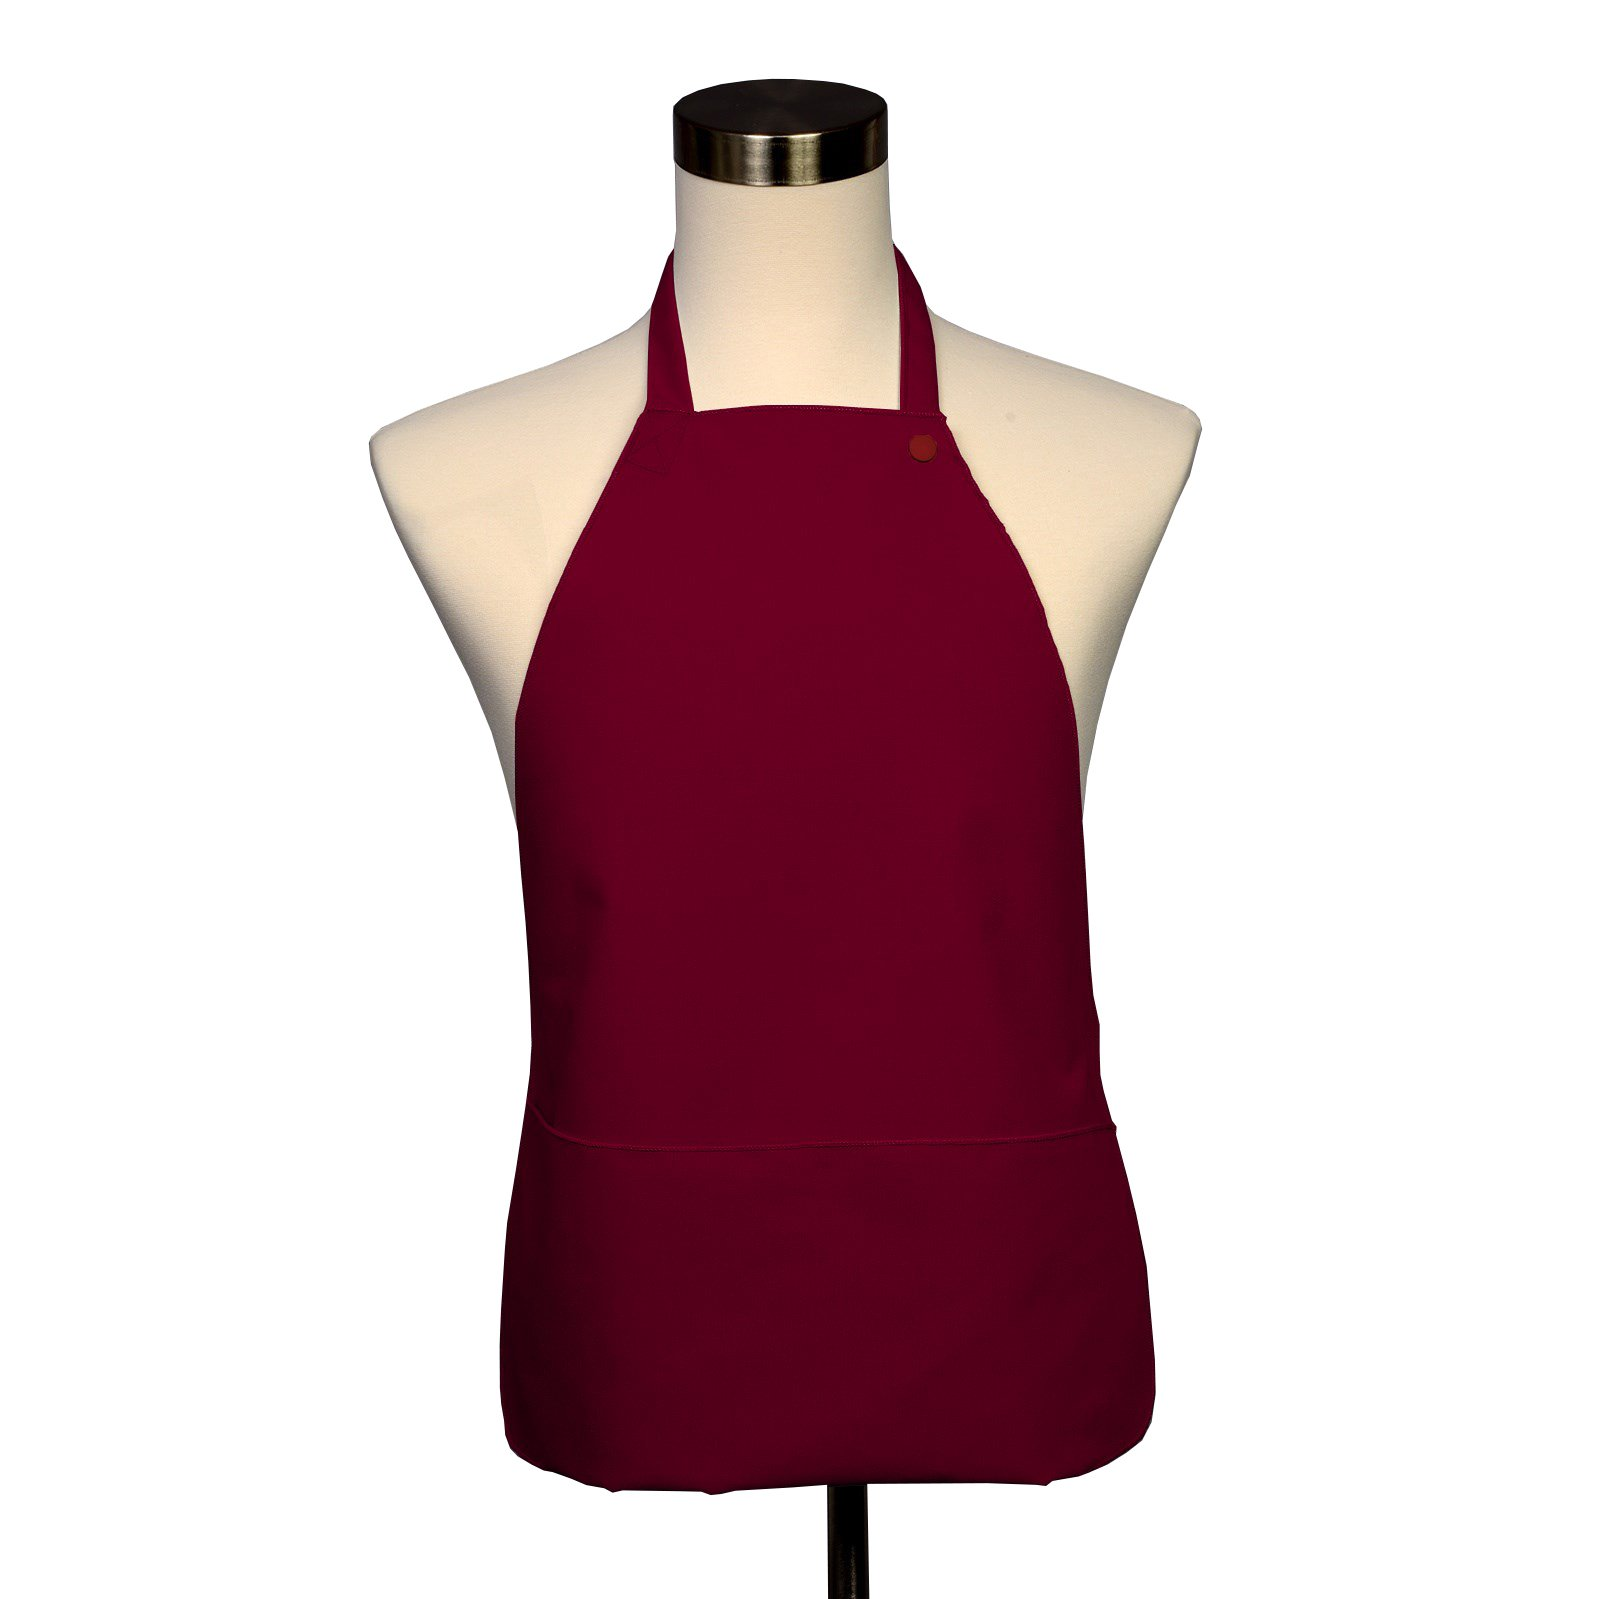 Adult Bib 25 Pack - Covered with Care Assorted Colors Available! (Red) by Fabric Textile Products